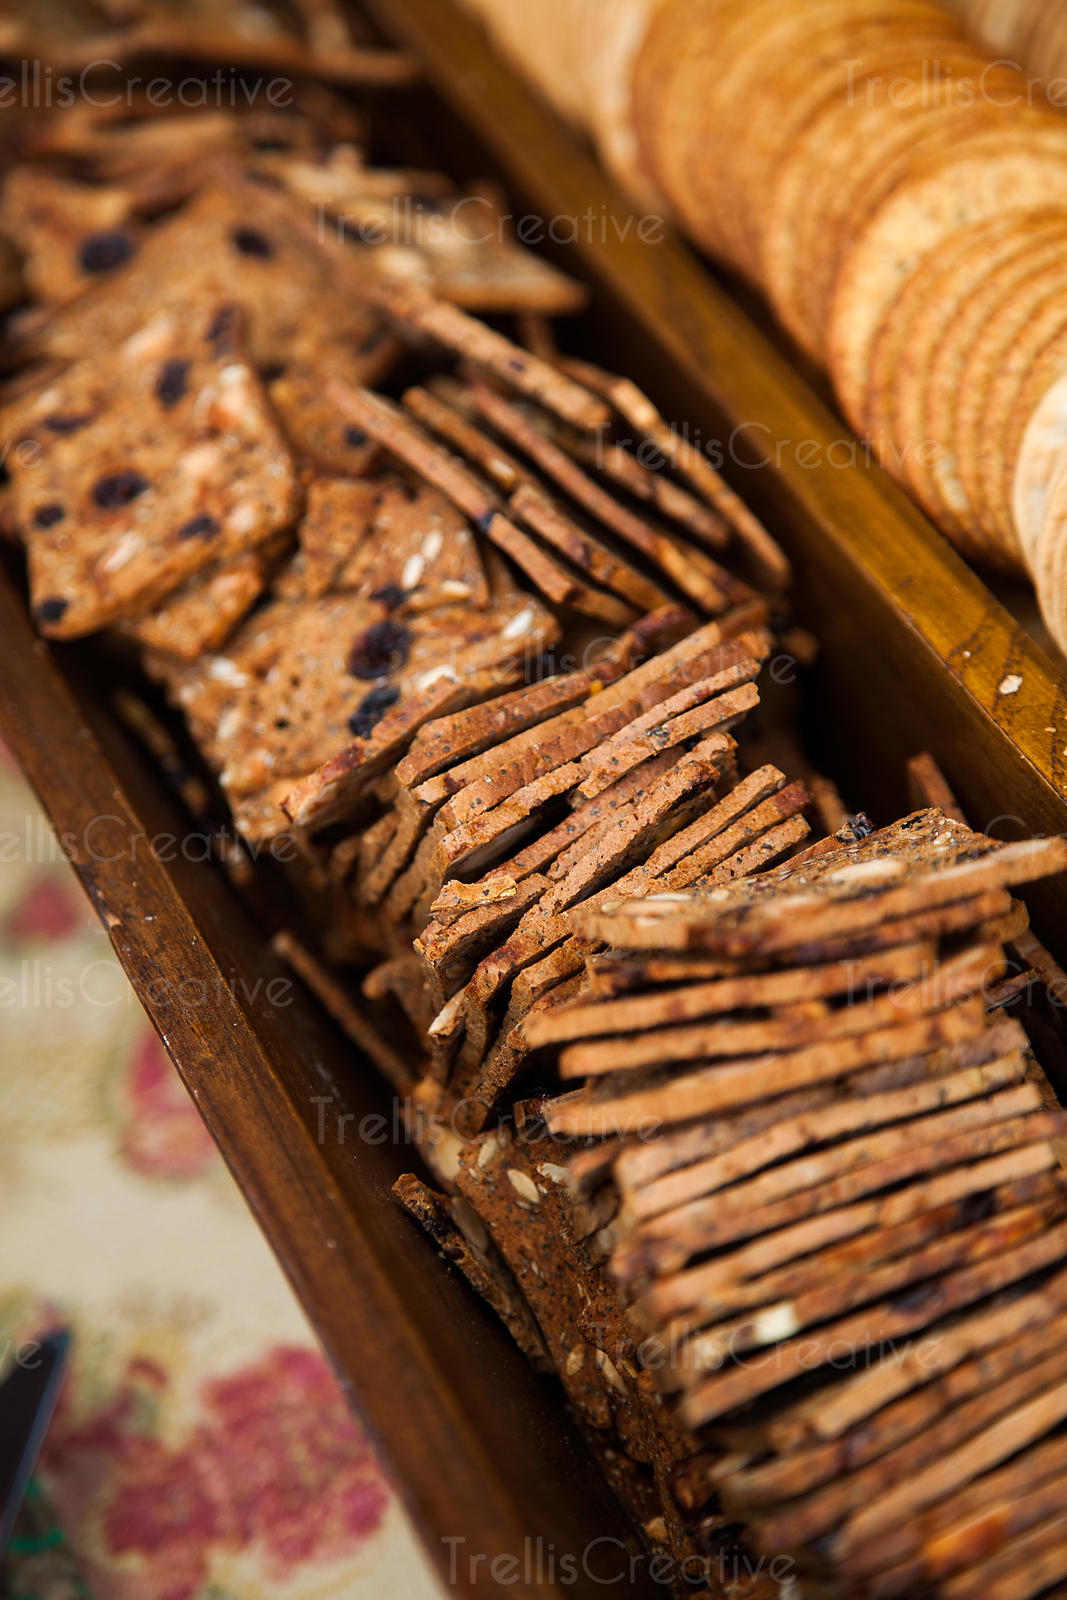 Several varieties of crackers neatly laid out for appetizers